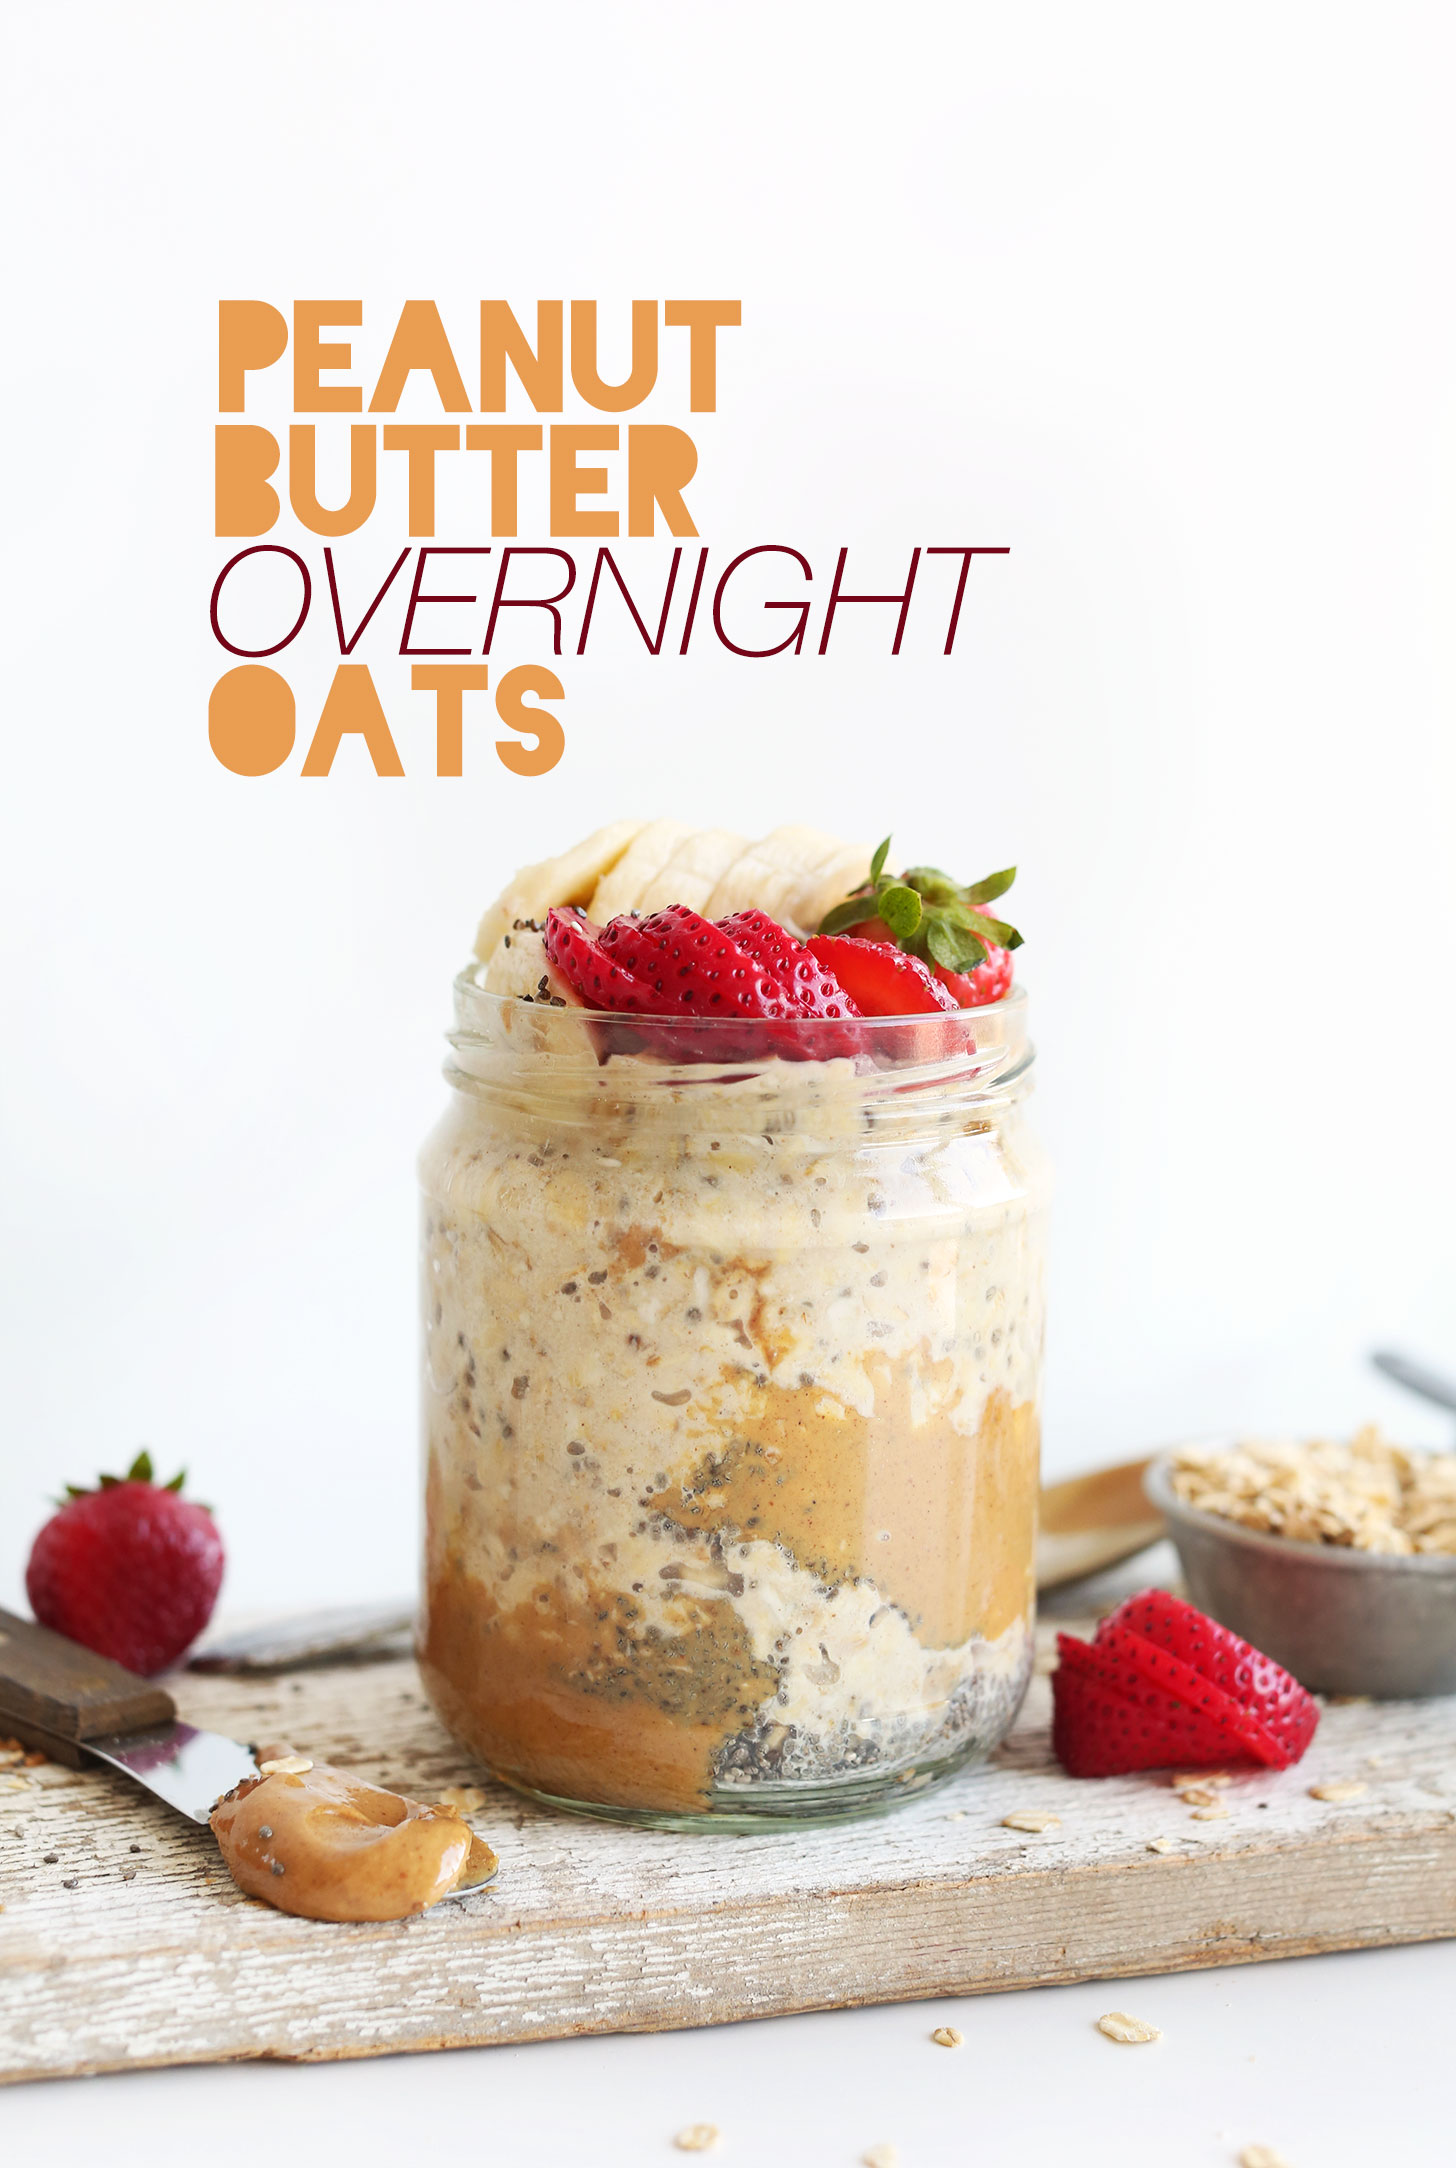 Jar of Peanut Butter Overnight Oats topped with fresh fruit